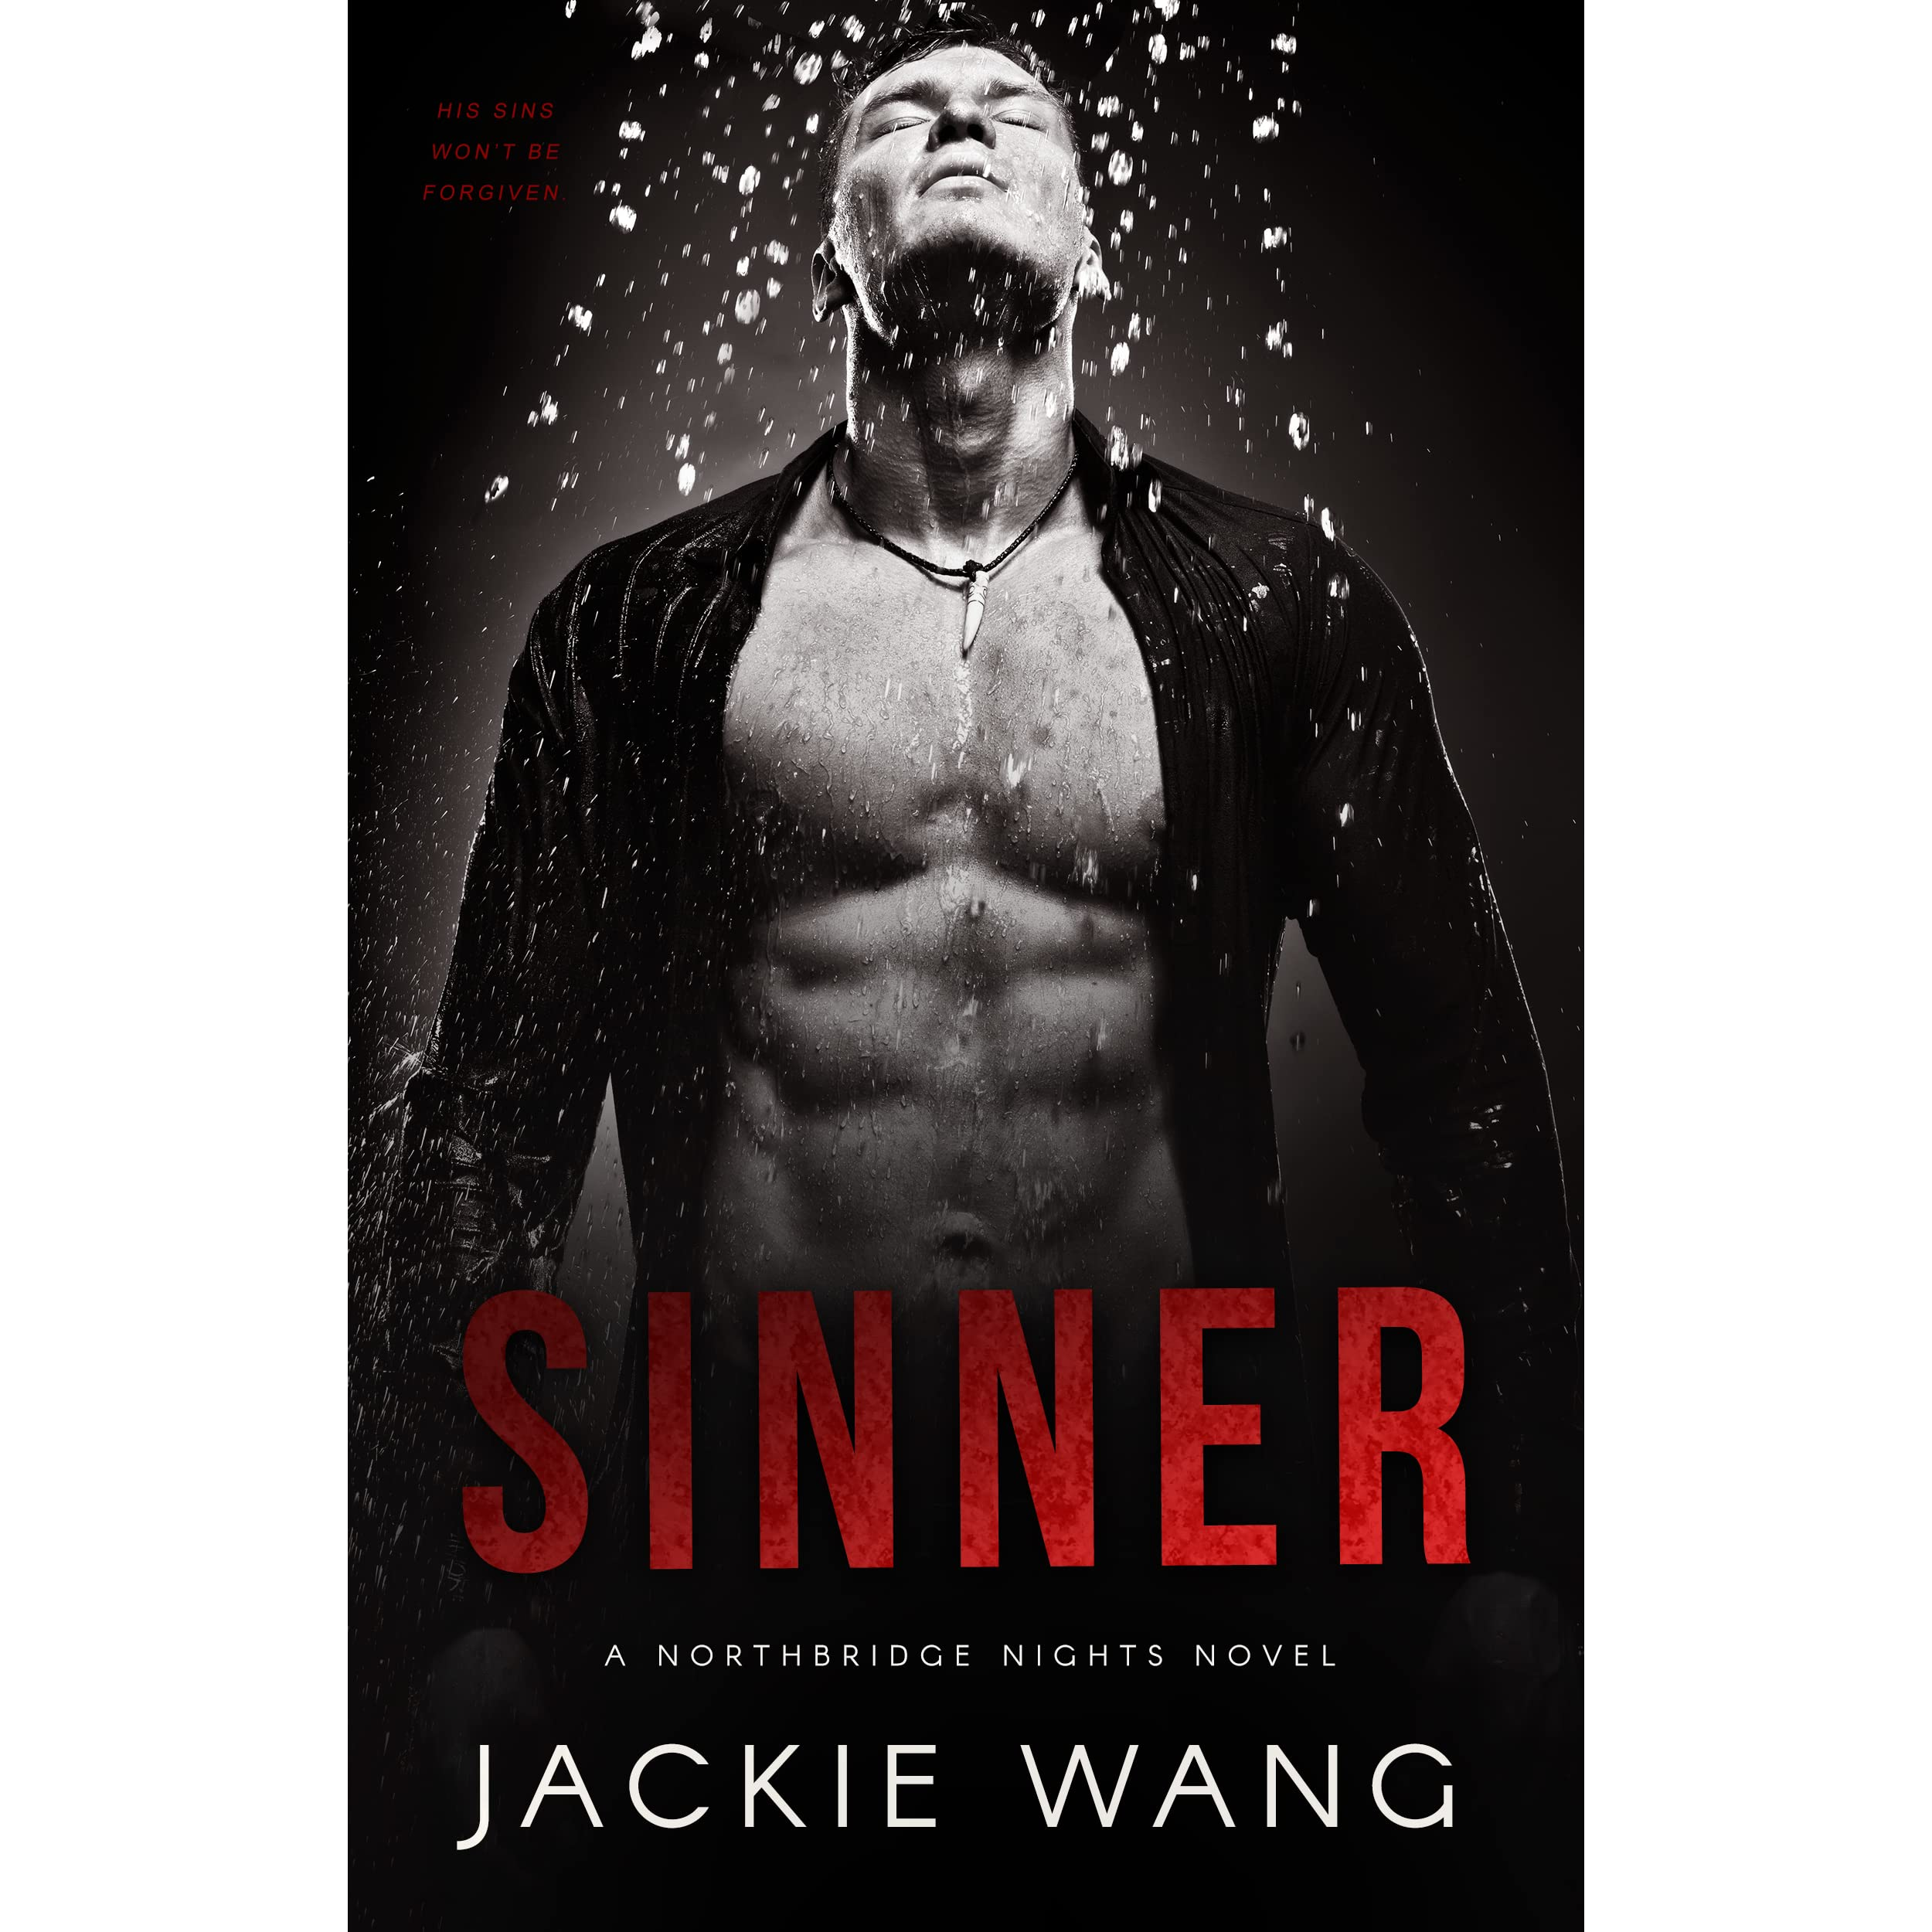 Confessions of A Justified Sinner/The Private Memoirs and Confessions of a Sinner